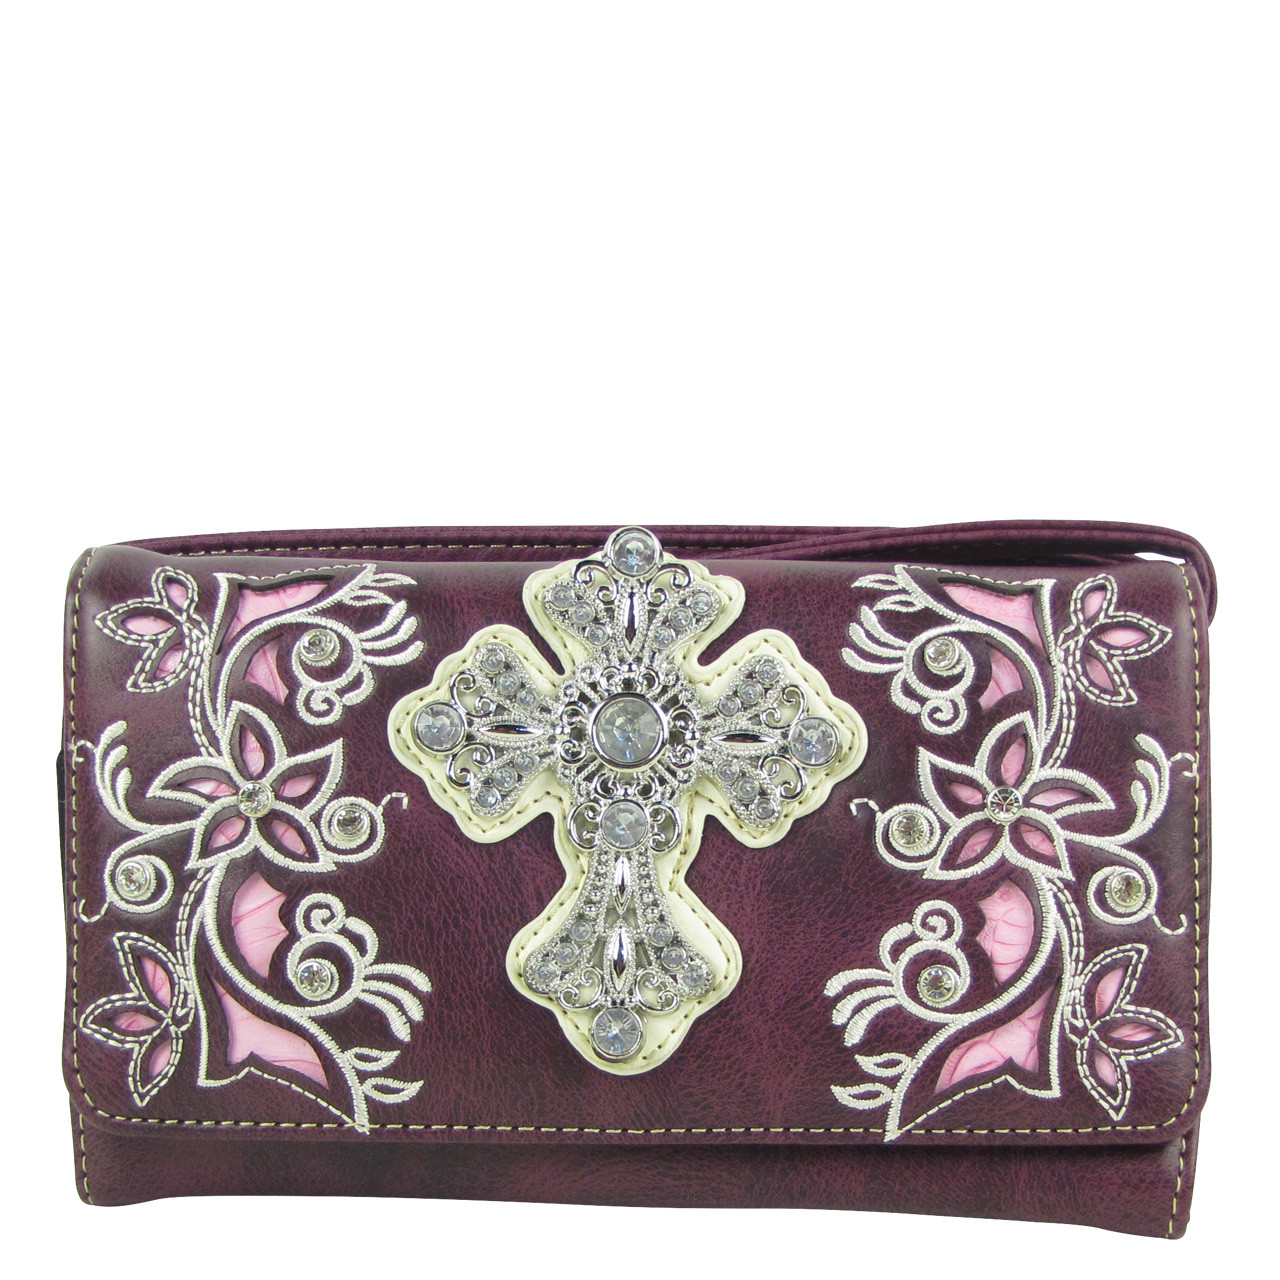 PURPLE RHINESTONE FLOWER CROSS LOOK CLUTCH TRIFOLD WALLET CW1-0471PPL